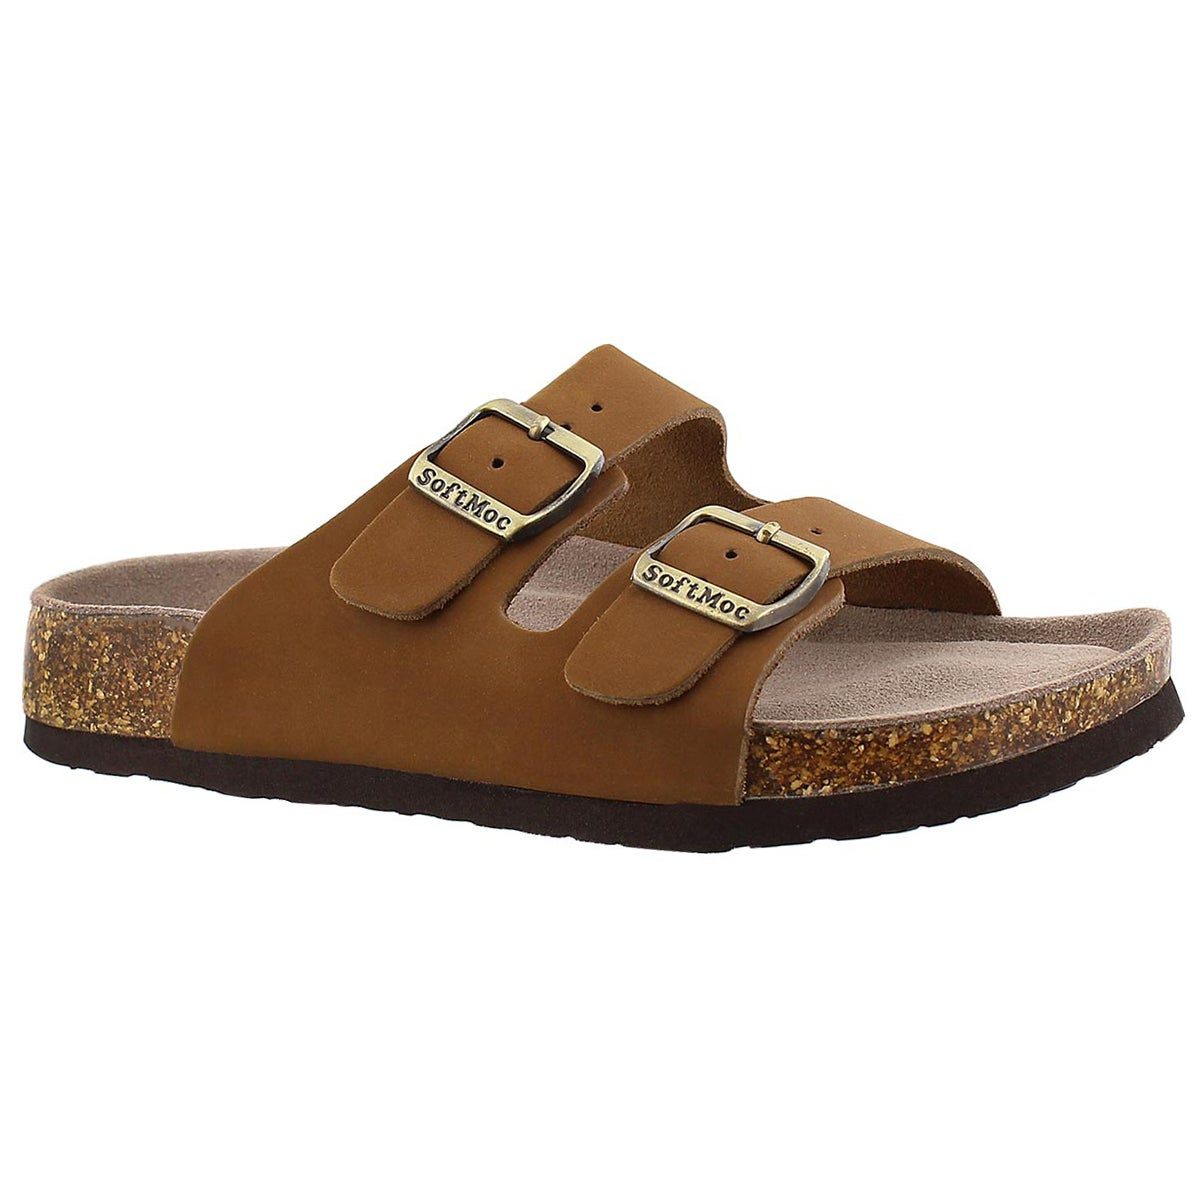 Women's ANNA 3 tan memory foam footbed sandals